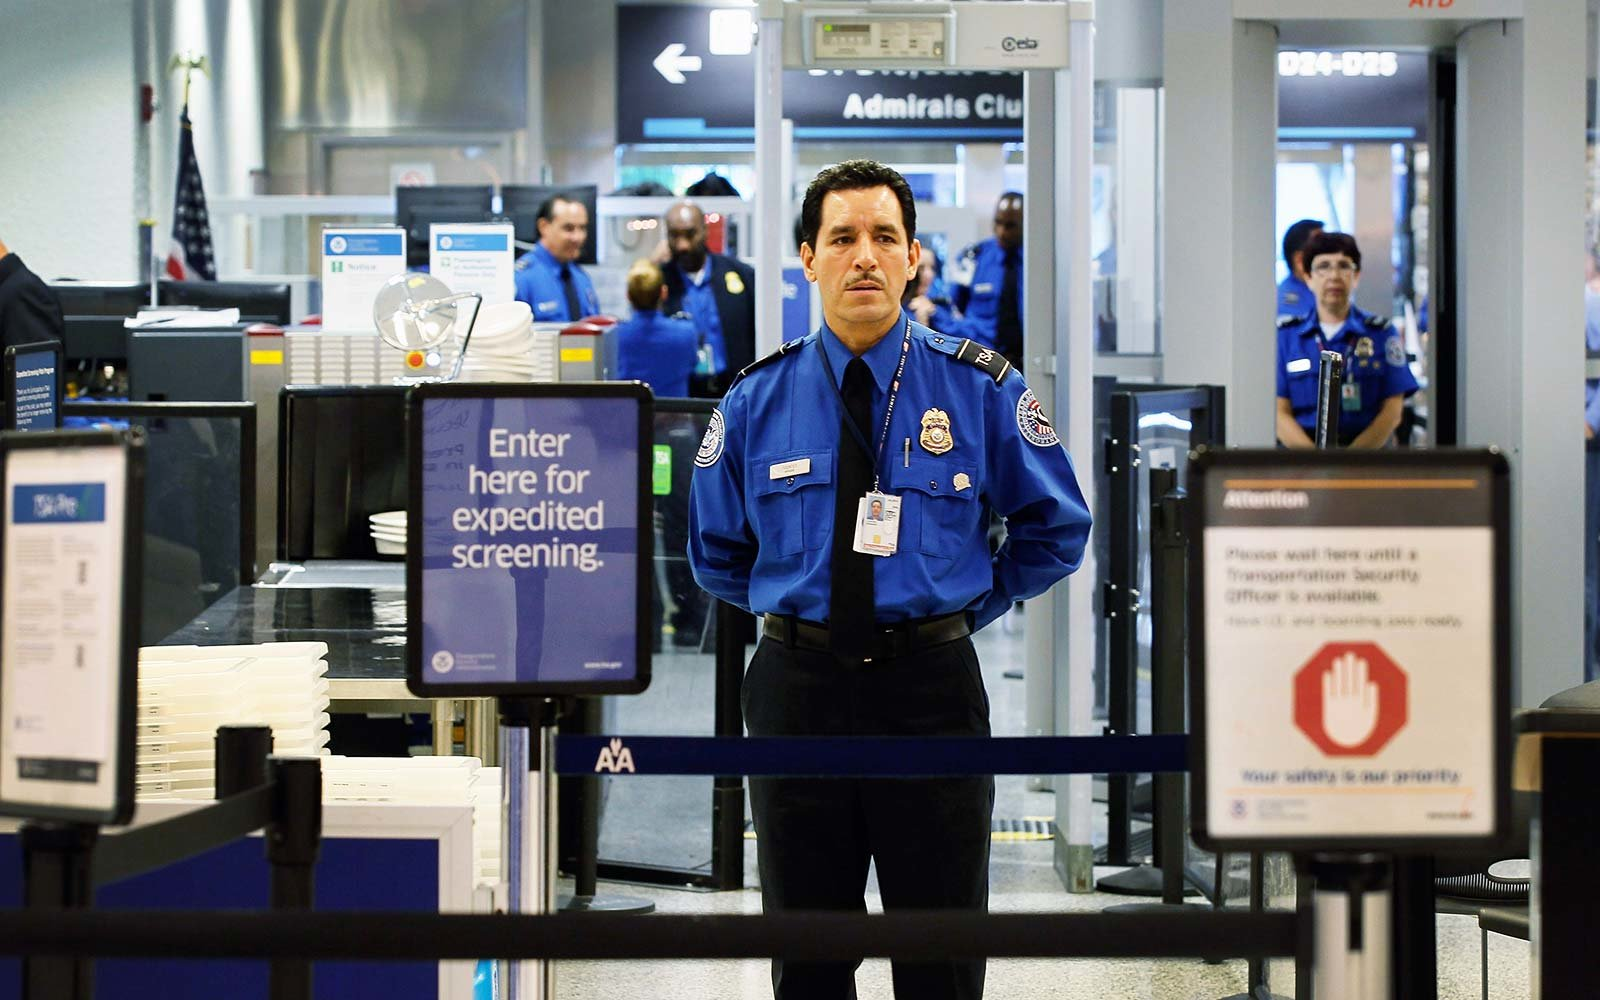 TSA behavioral detection